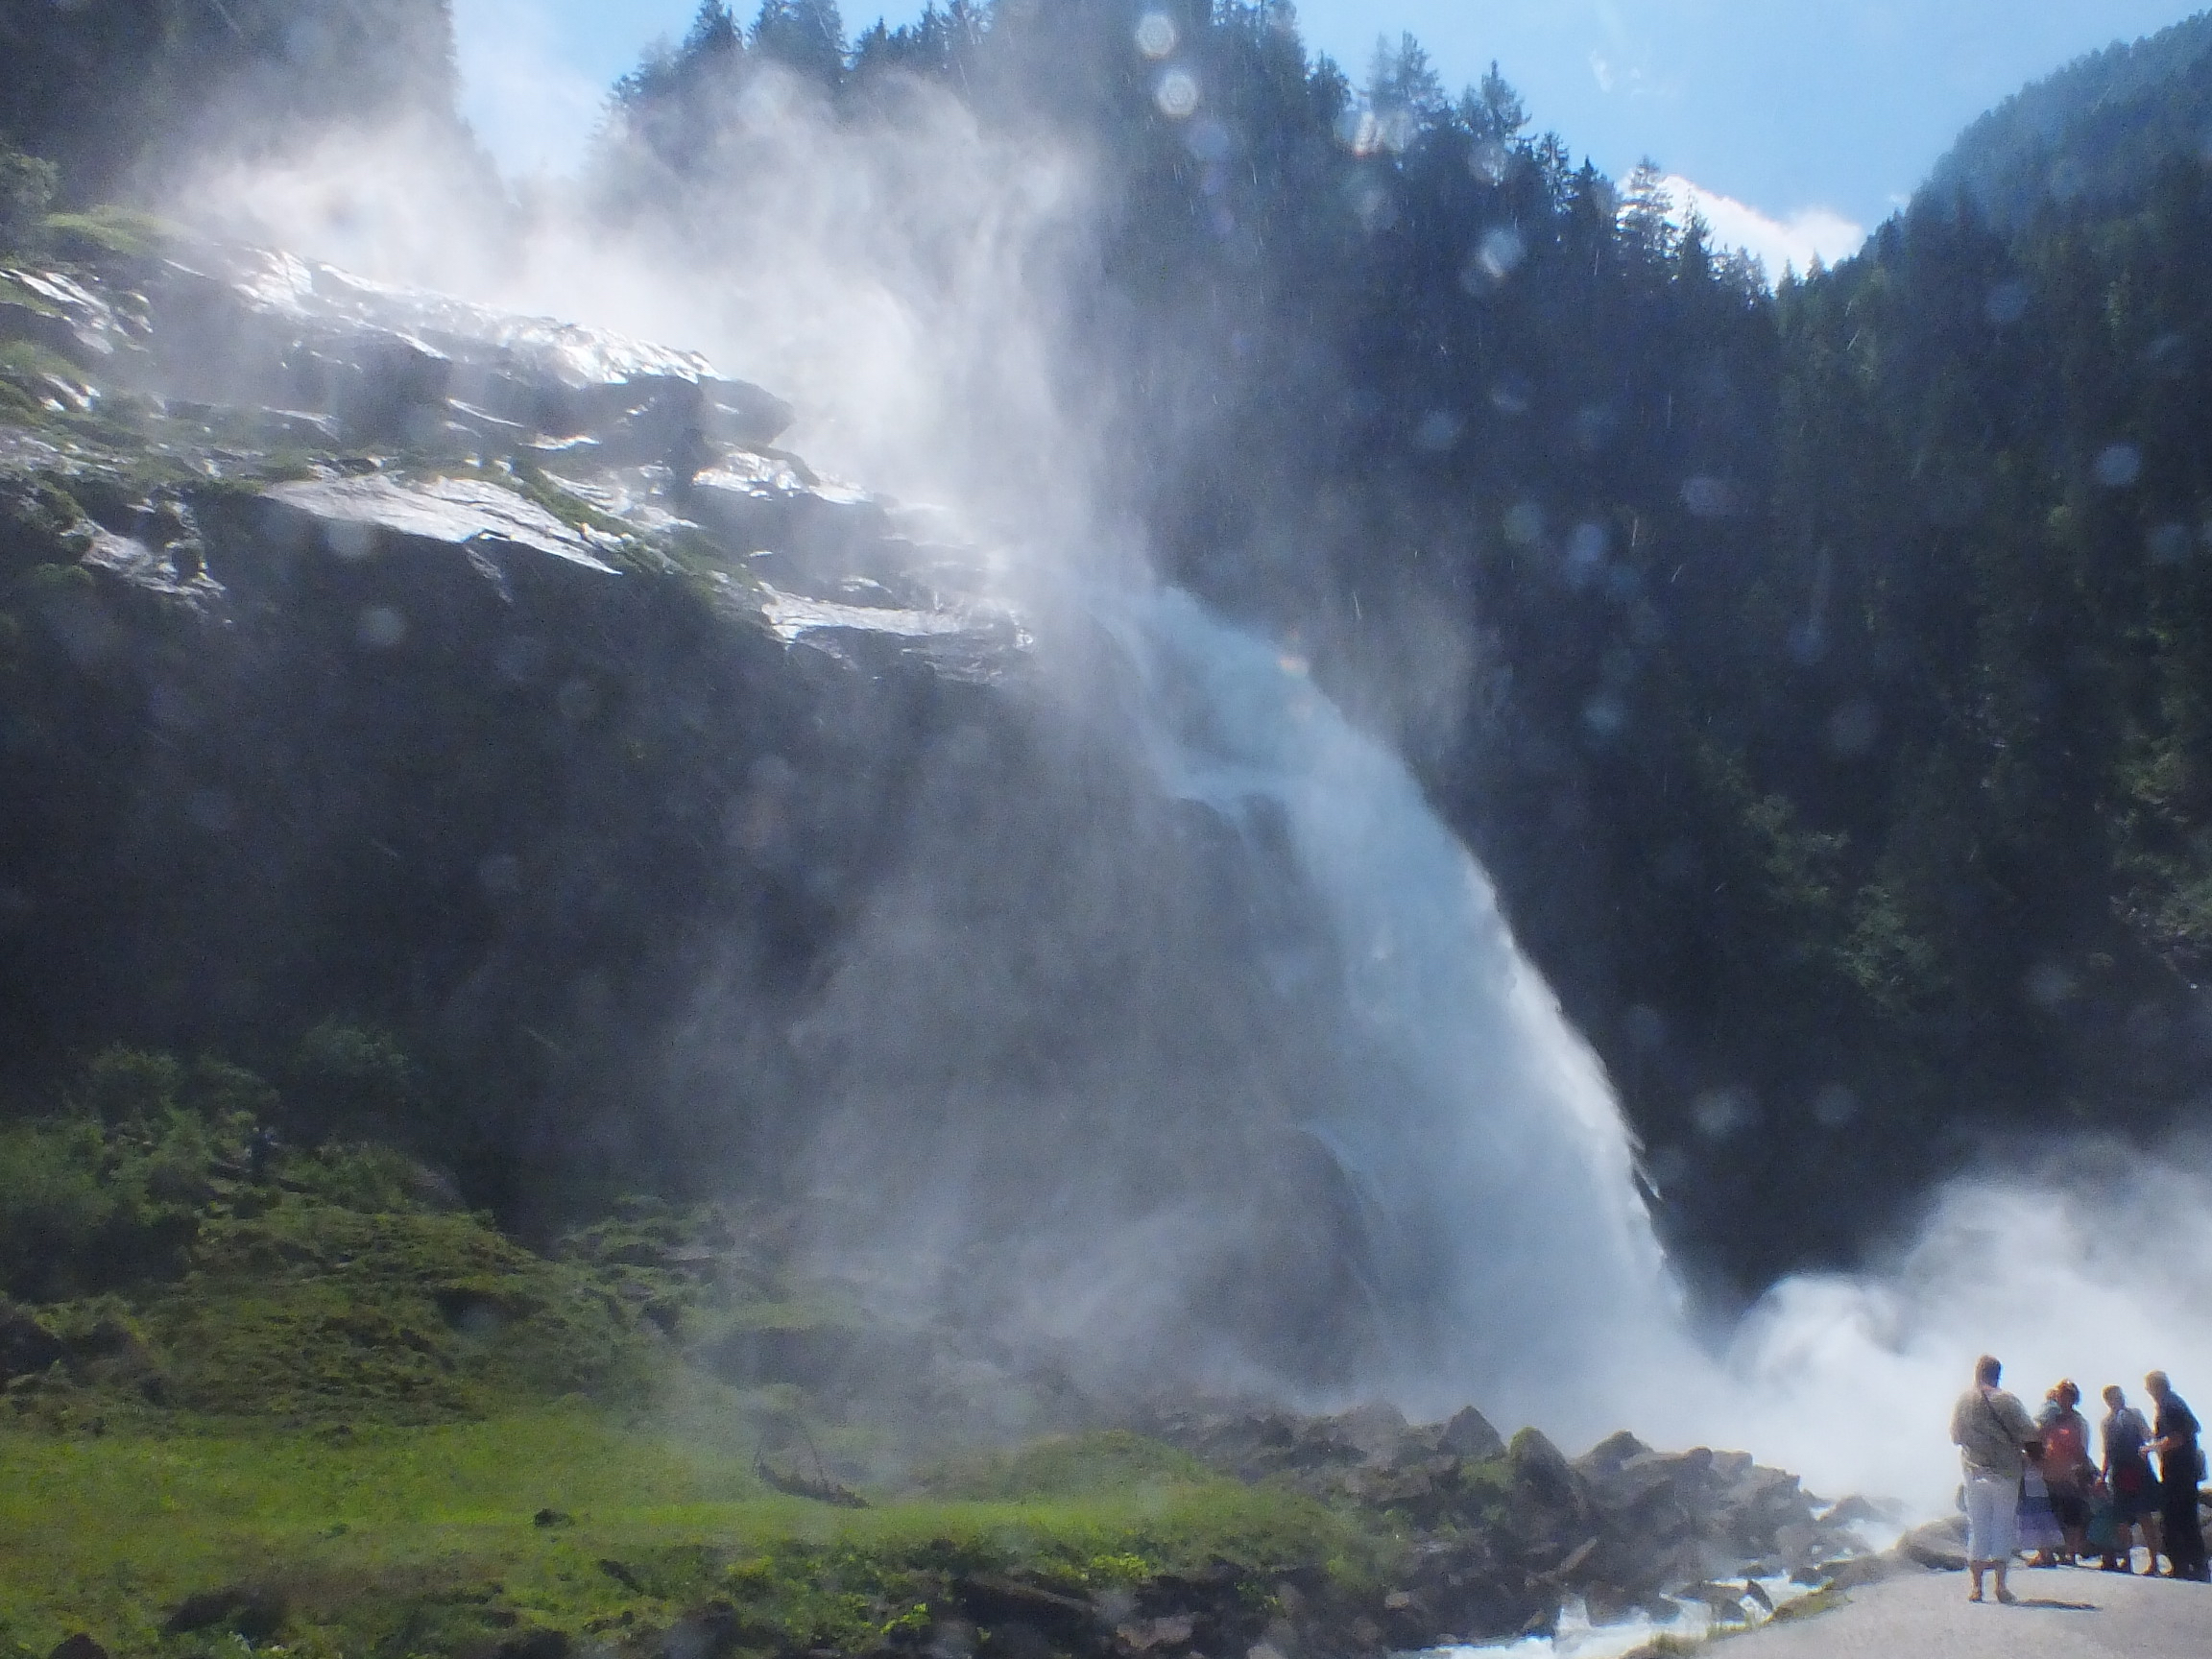 Shearings Splendors of The Austrian Tyrol 19/06/2012 - Day 8 - Krimml Falls